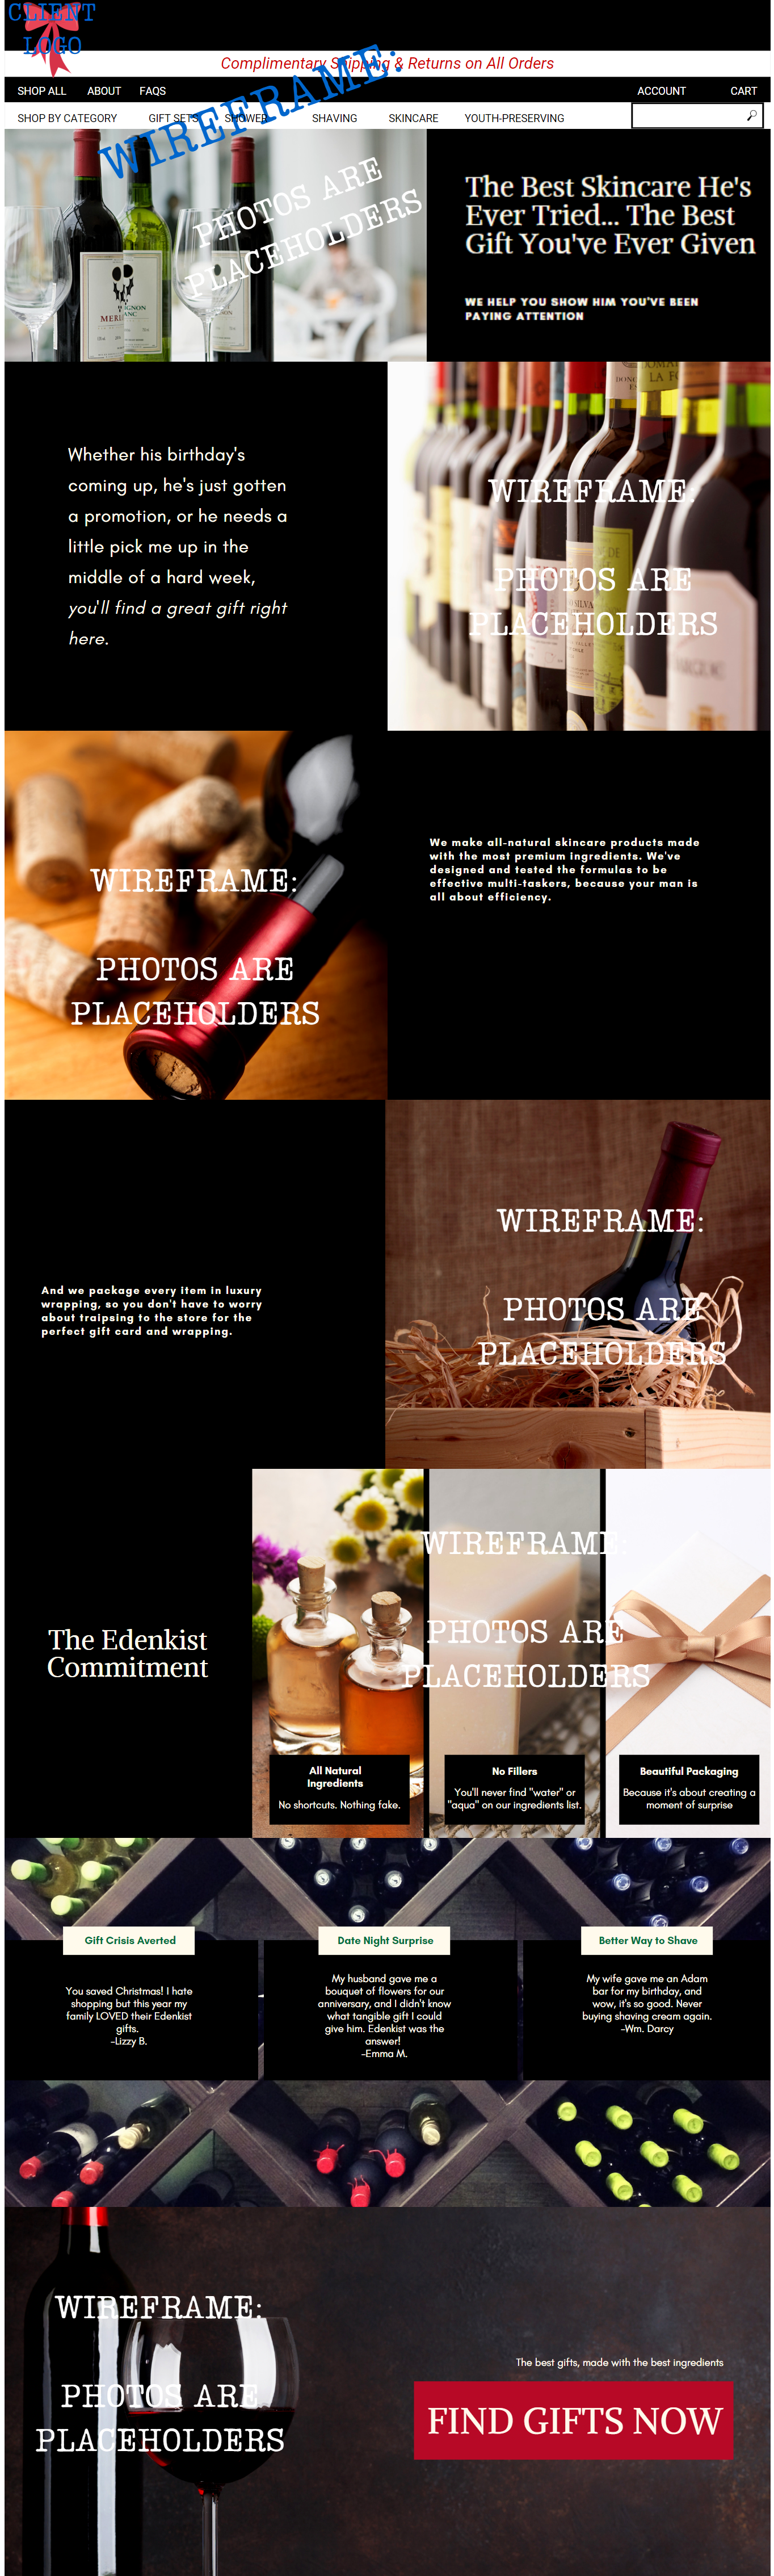 Homepage Mock-Up for Luxury, All-Natural Skin Care Startup -